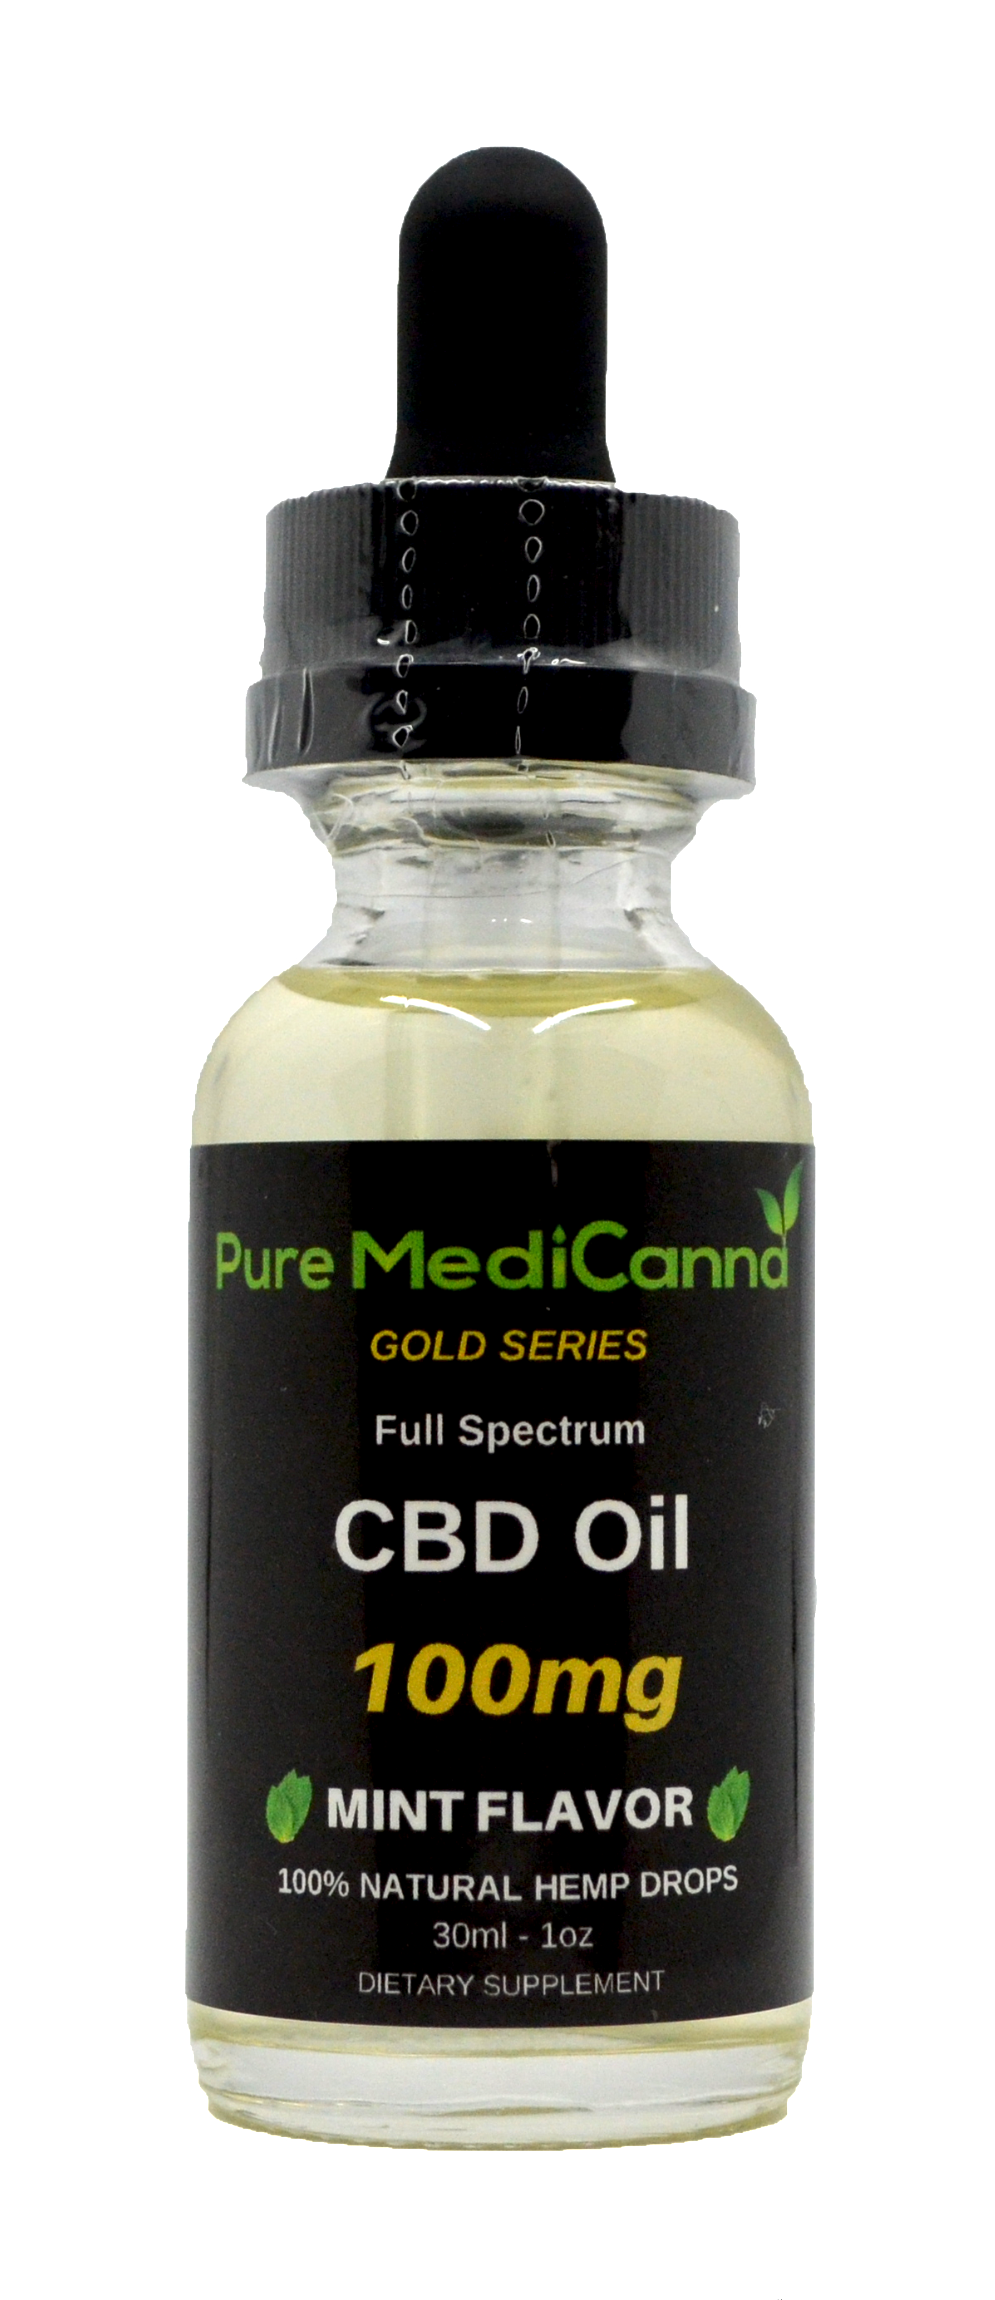 Gold Series Full Spectrum CBD Tincture - 100mg - PMC